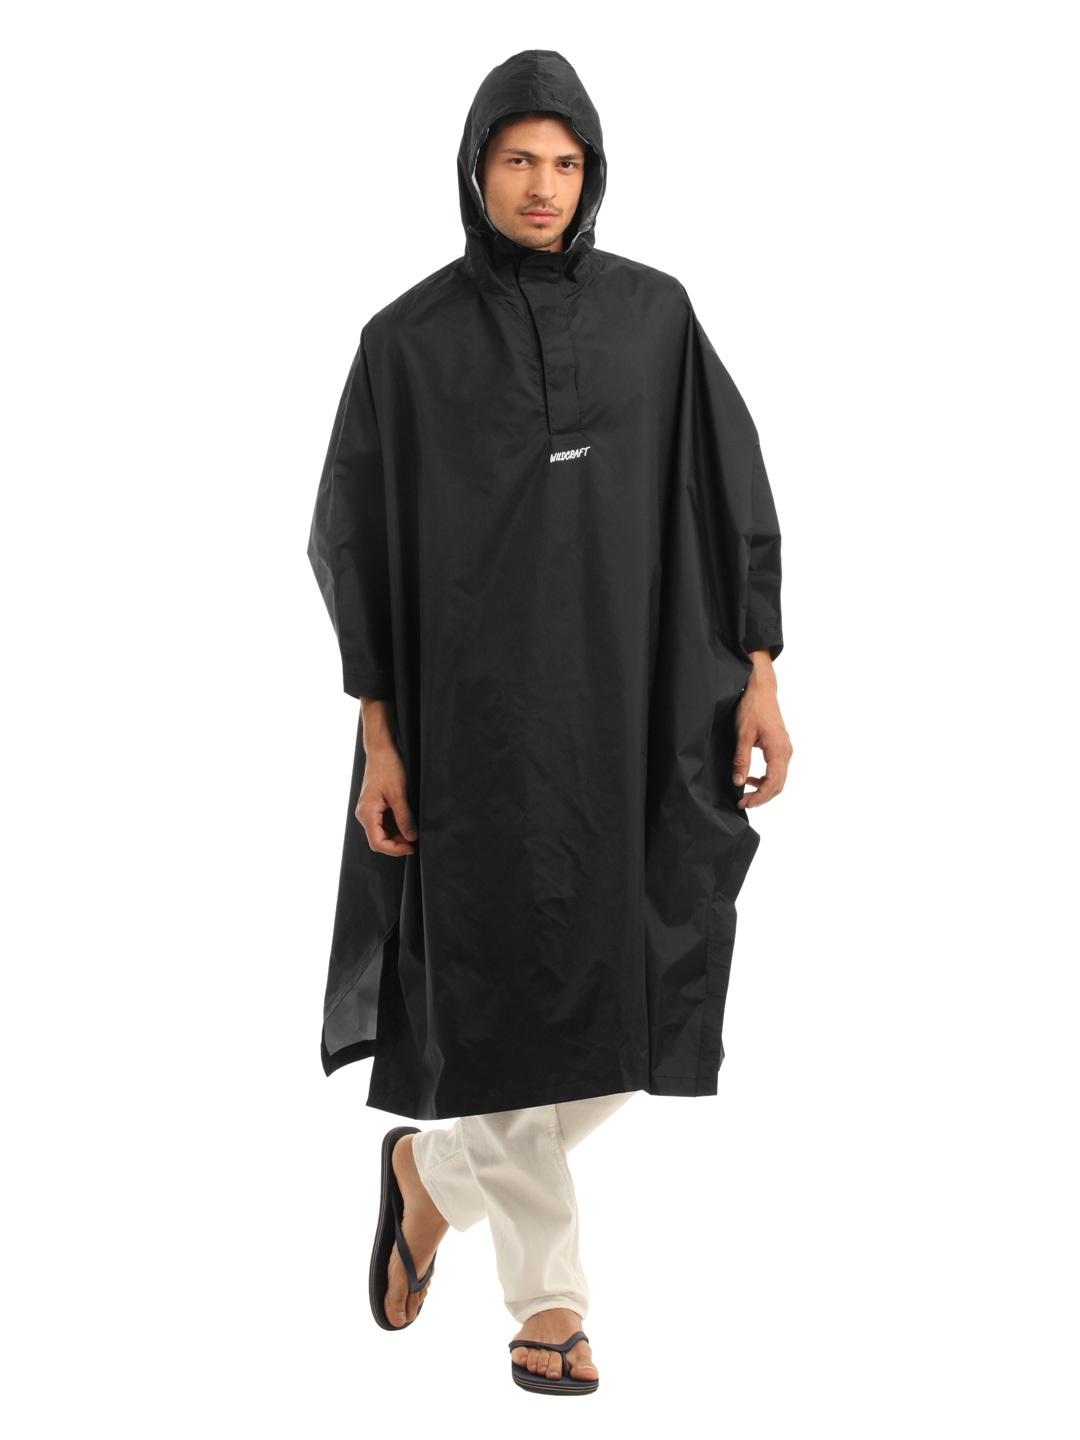 Wildcraft Unisex Black Poncho Rain Jacket